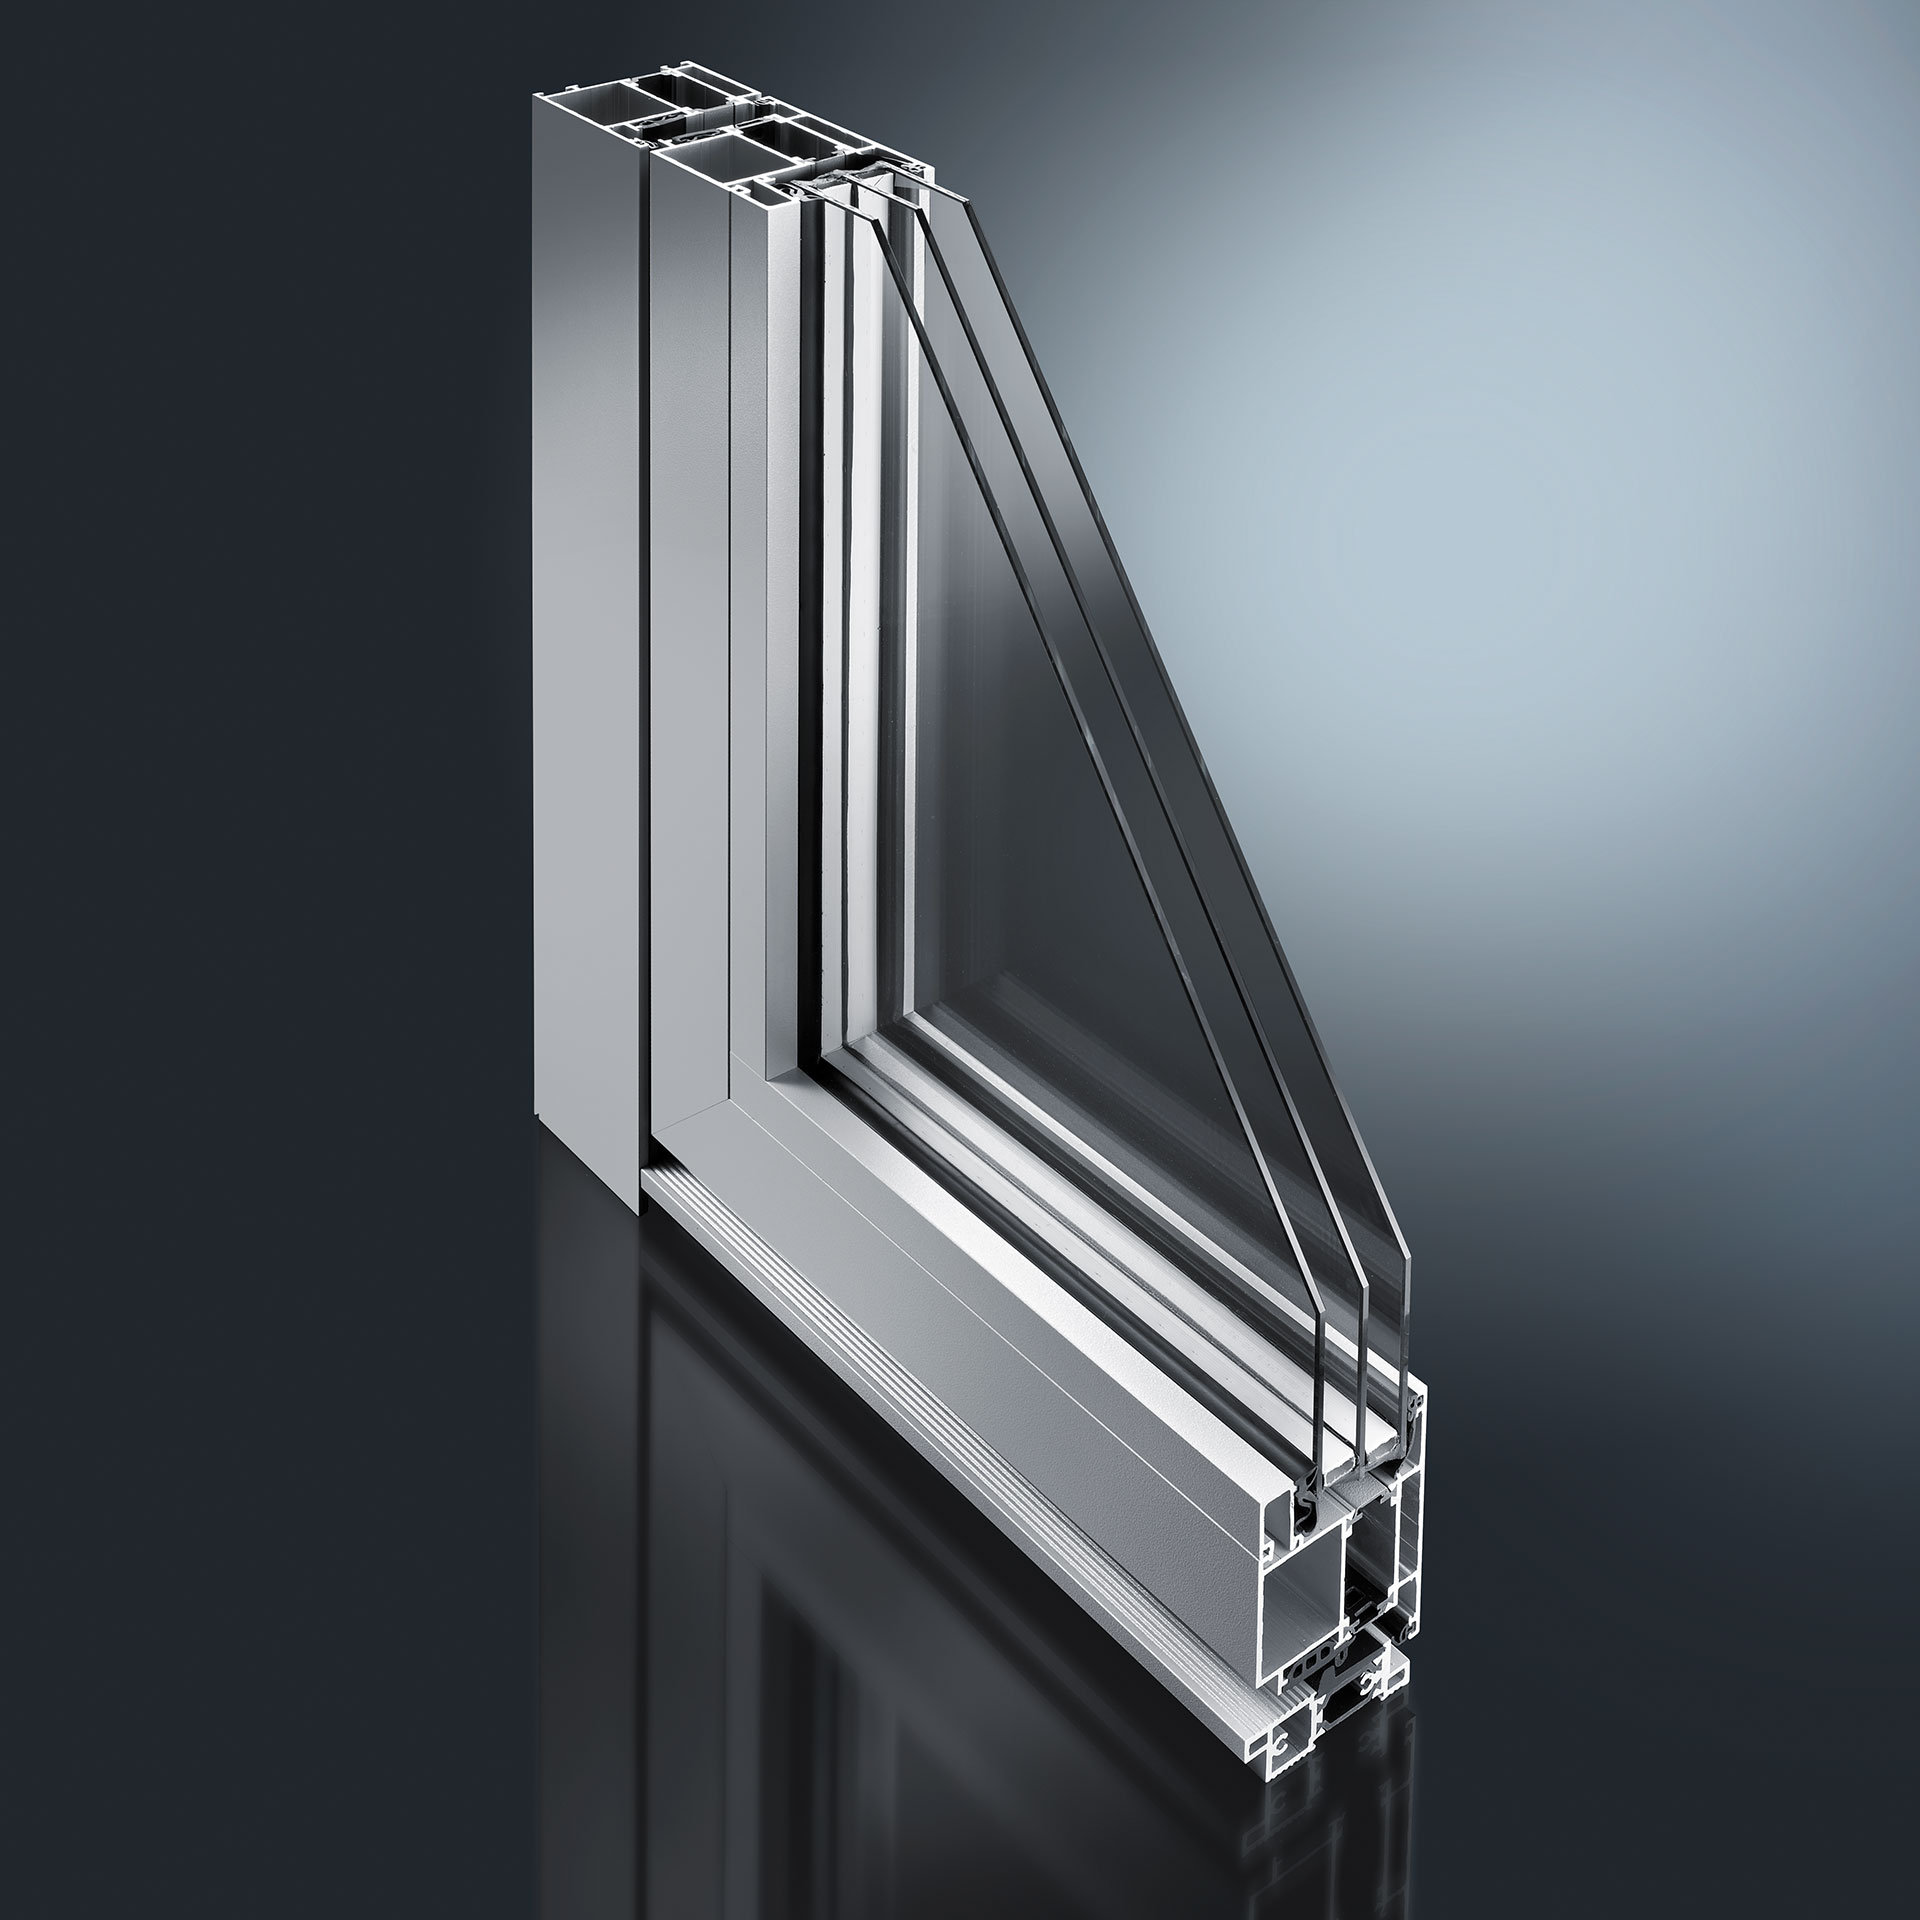 Profile systems for front doors and doors - We offer aluminium attachment shells for wood doors and modern standard models made of aluminium as well as profile system for separation and wall elements.